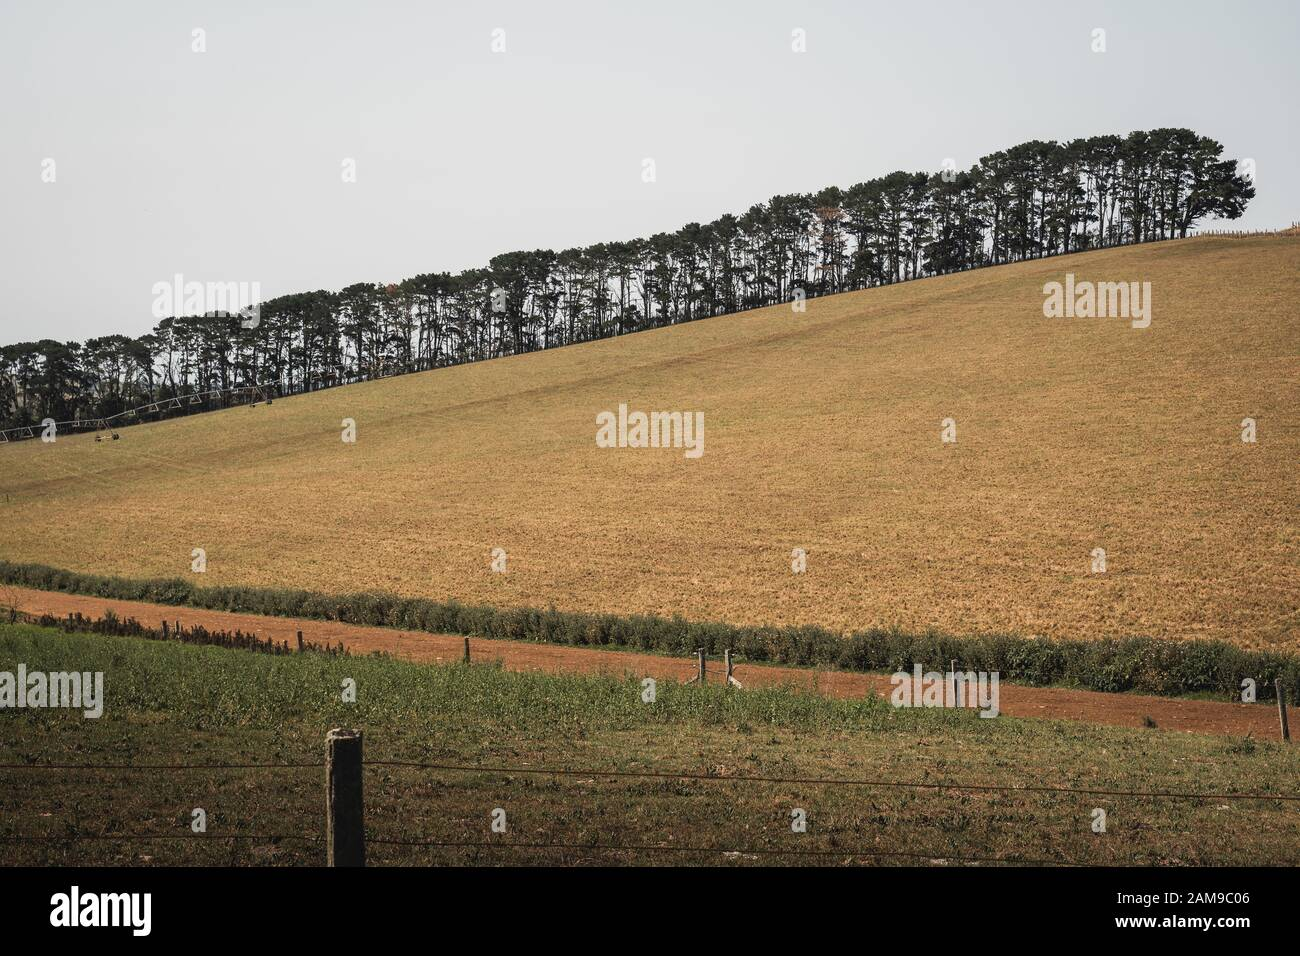 Grassy Australian field with tree line in the background in the ...